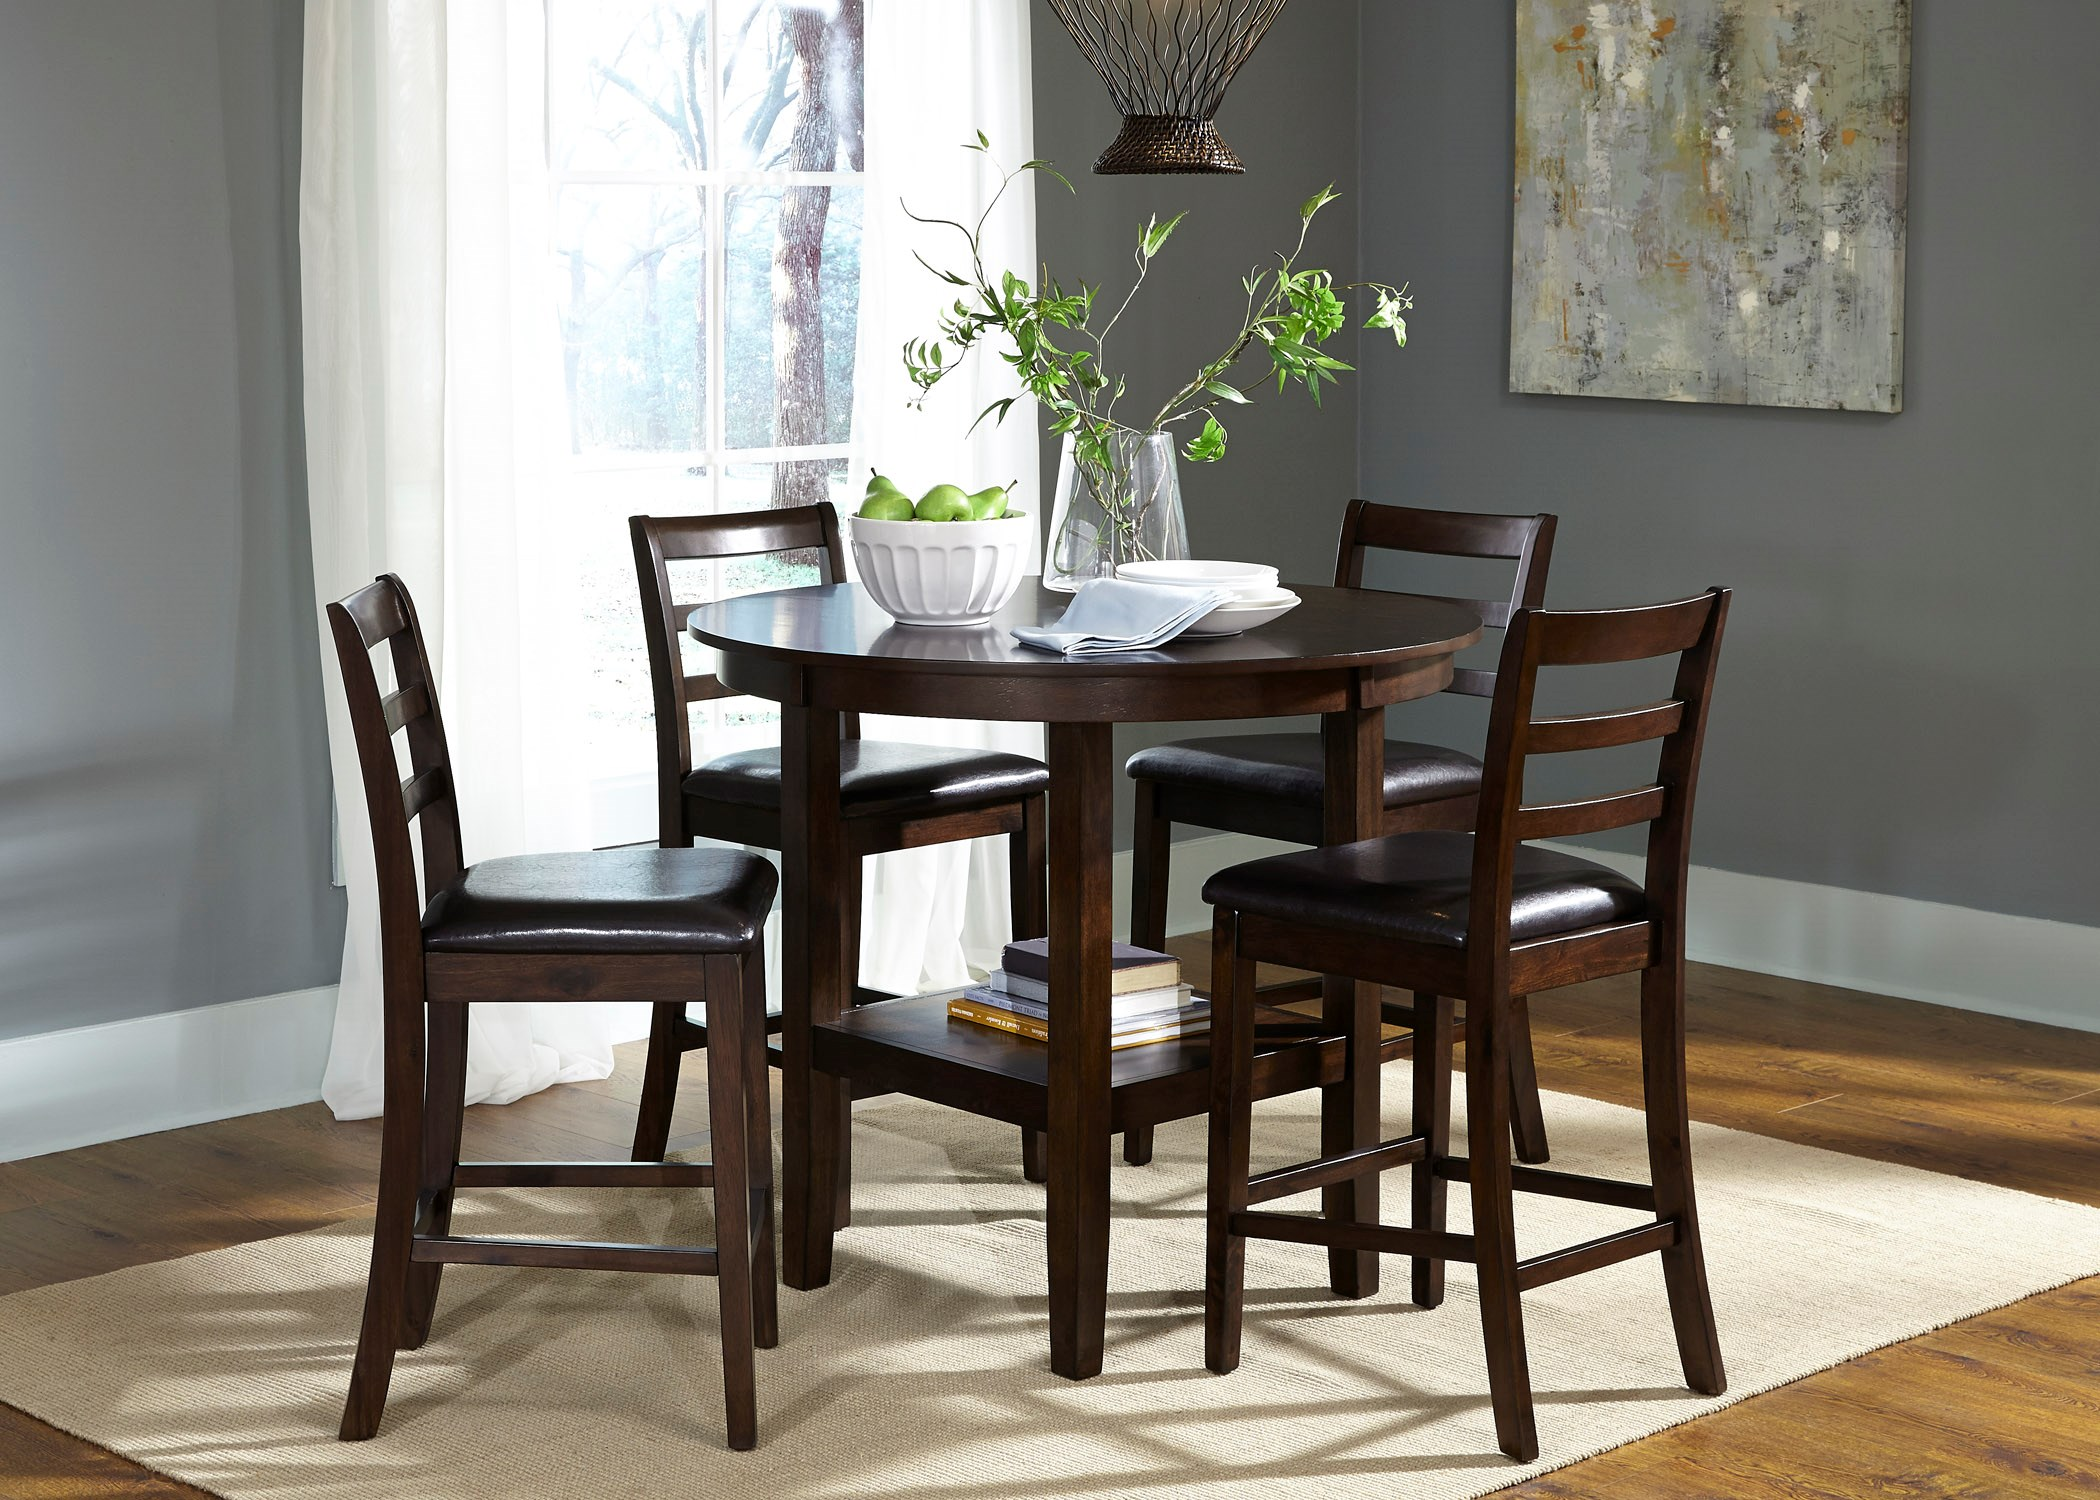 Liberty Furniture Bradshaw Casual Dining 5 Piece Round Pub  : bradshaw20casual20dining32 cd 5pub bjpgscalebothampwidth500ampheight500ampfsharpen25ampdown from www.dhifurniture.com size 500 x 500 jpeg 48kB